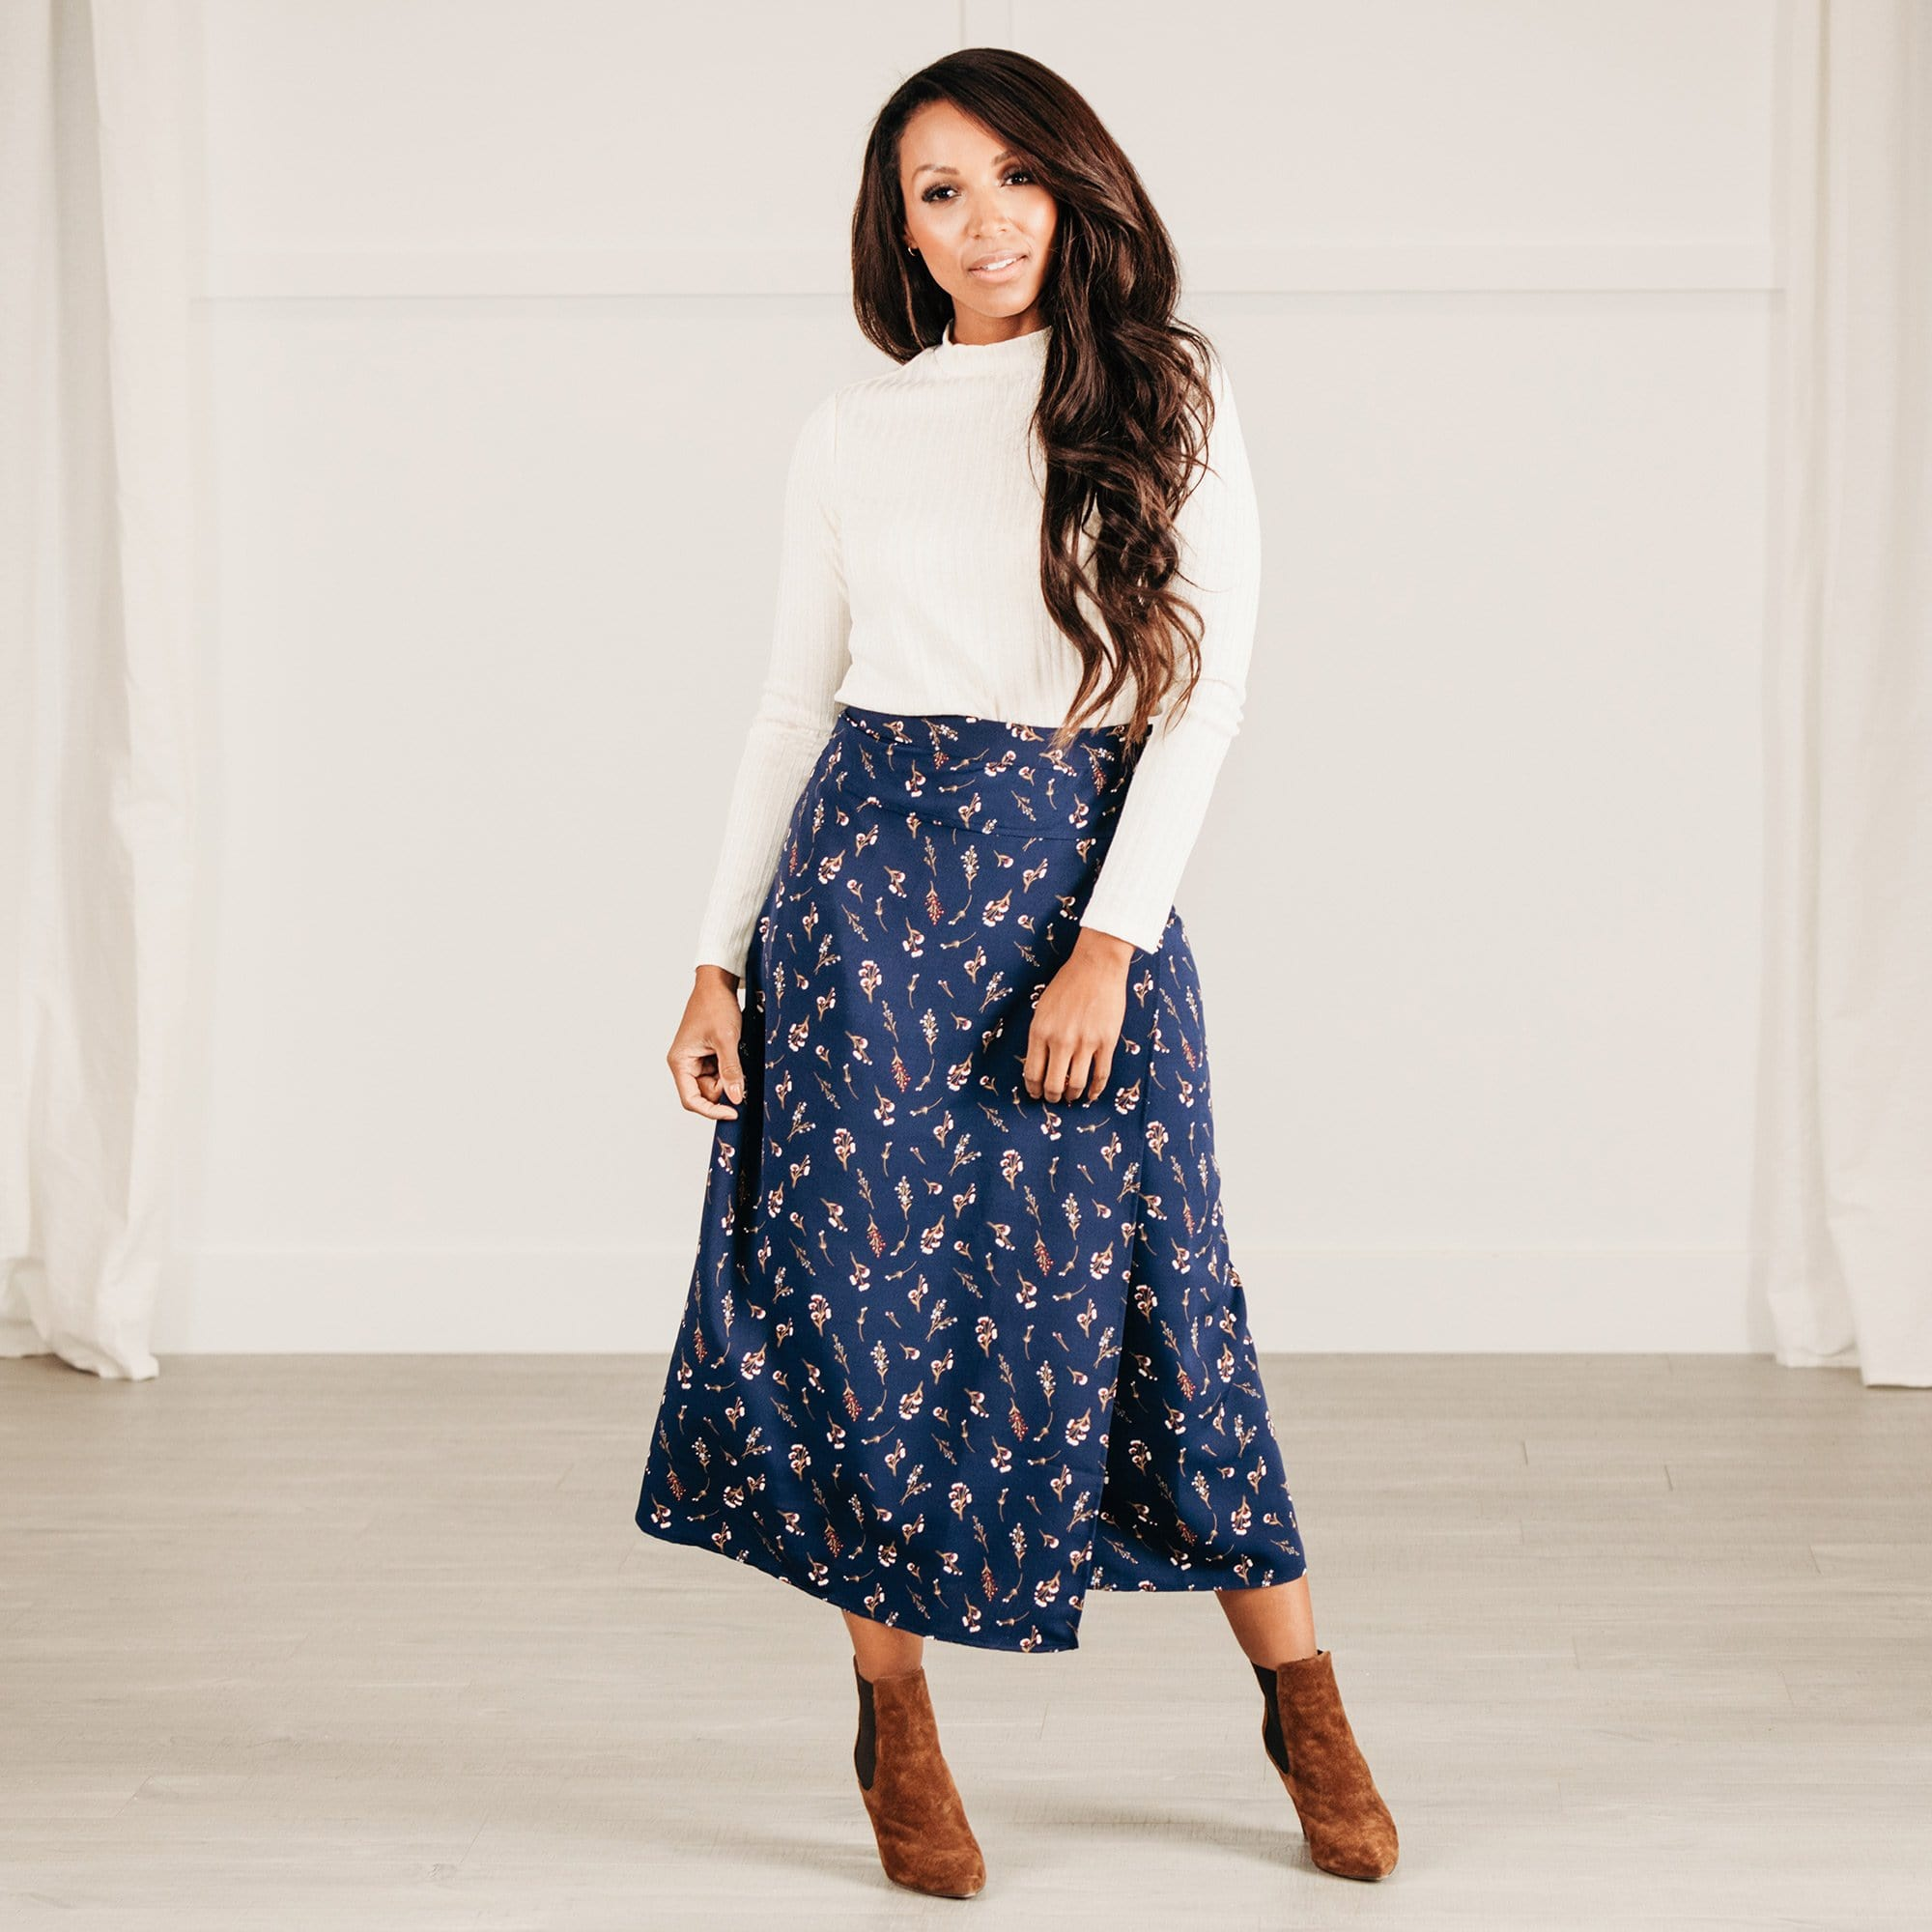 Midi Length Wrap Skirt